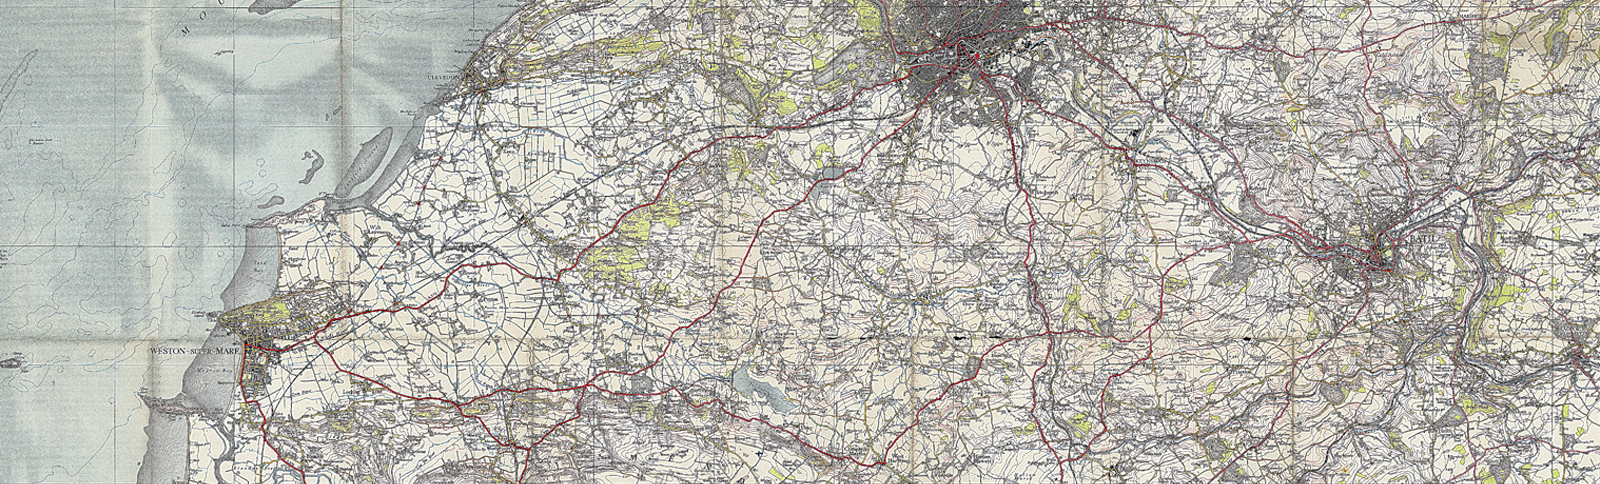 Rare Map Scanning for in Oxfordshire UK